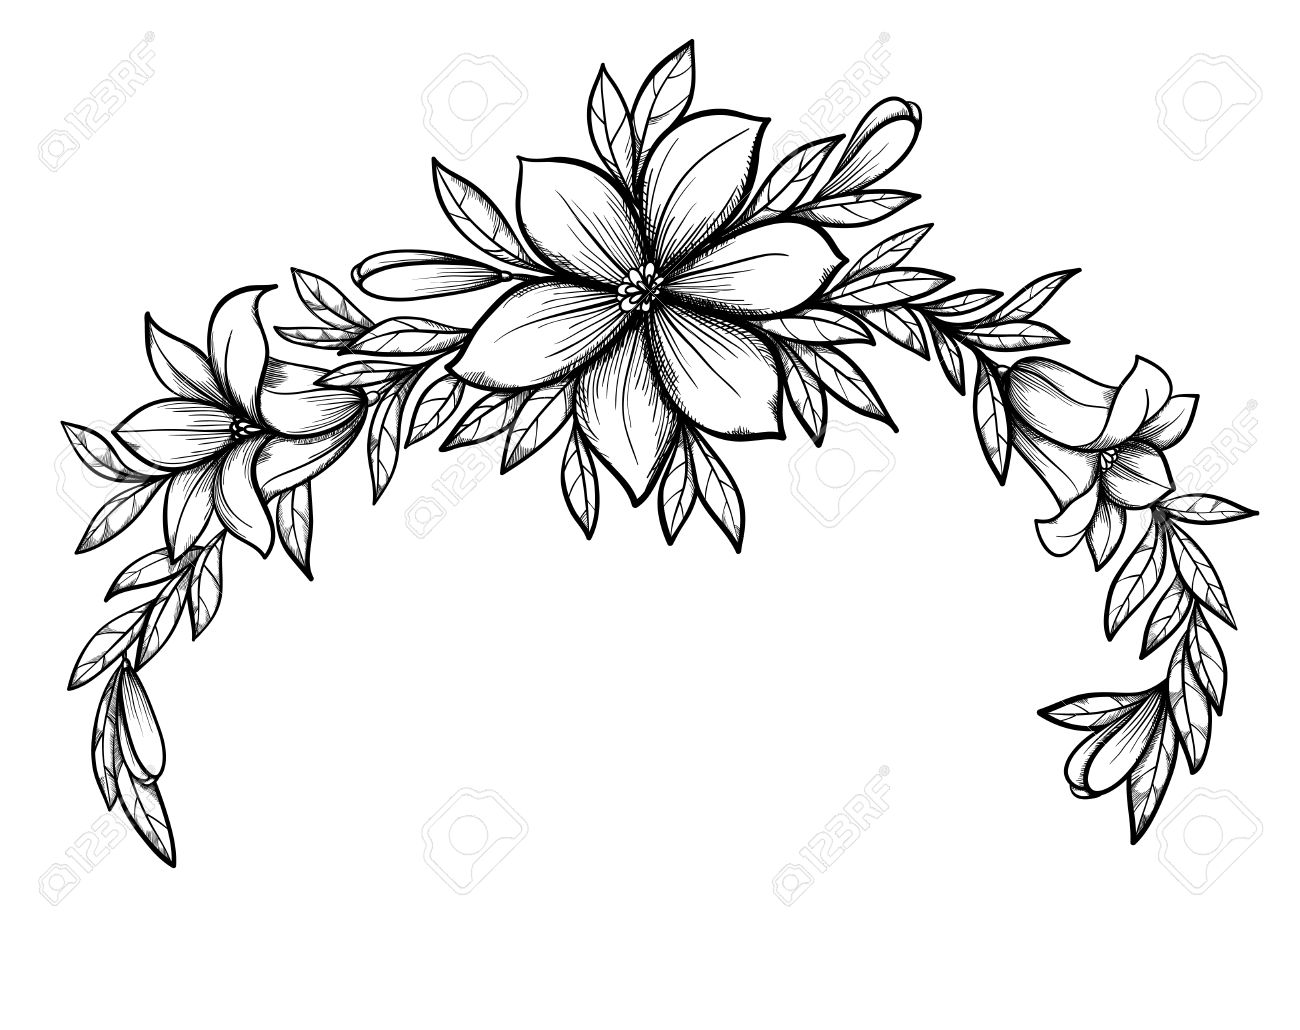 1300x1030 Beautiful Graphic Drawing Lily Branch With Leaves And Buds